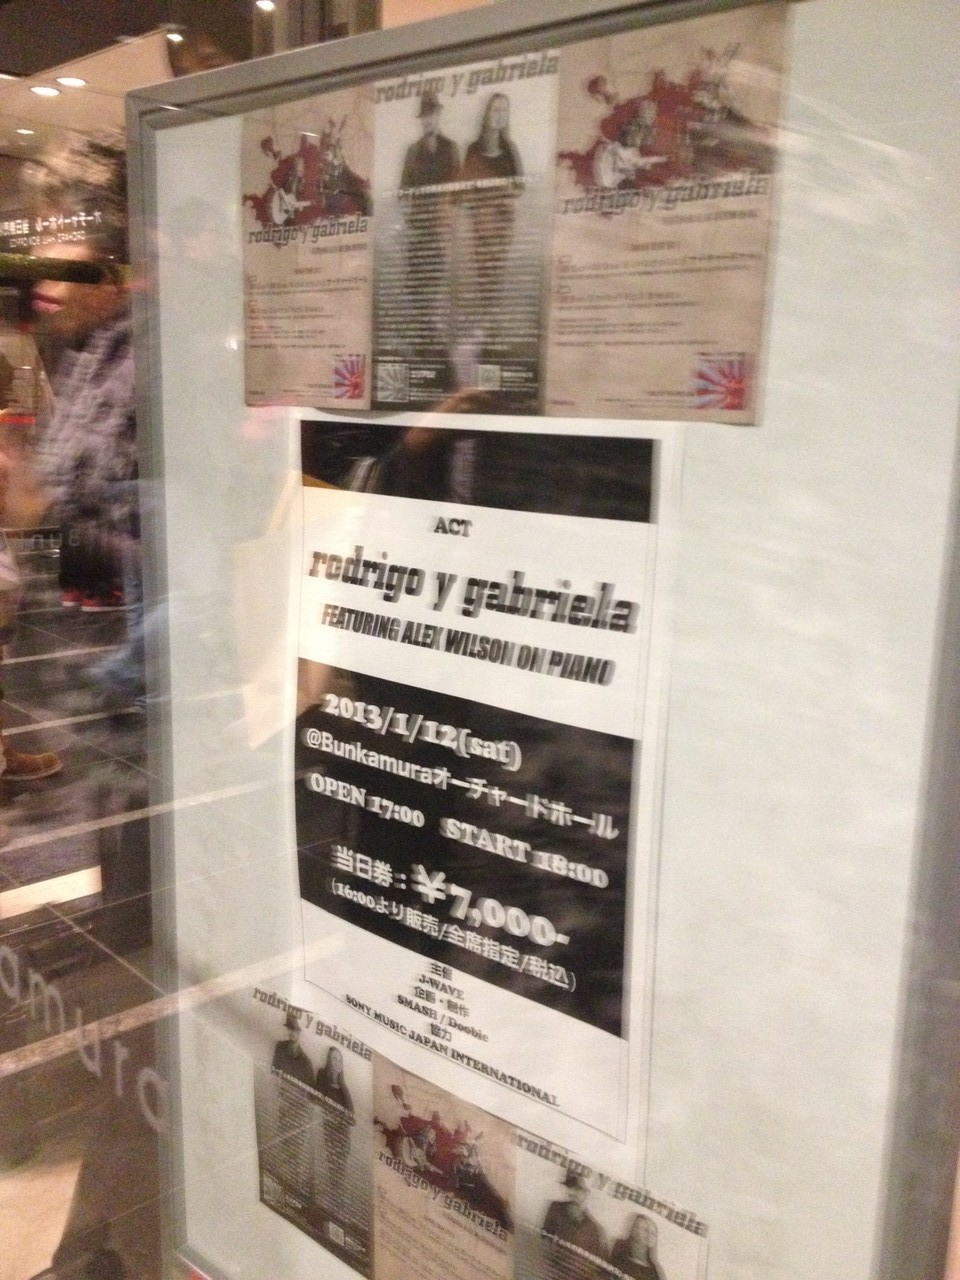 We arrive at the venue ... show starts at 6pm .. super early for a rock concert! — at Orchard Hall Shibuya.